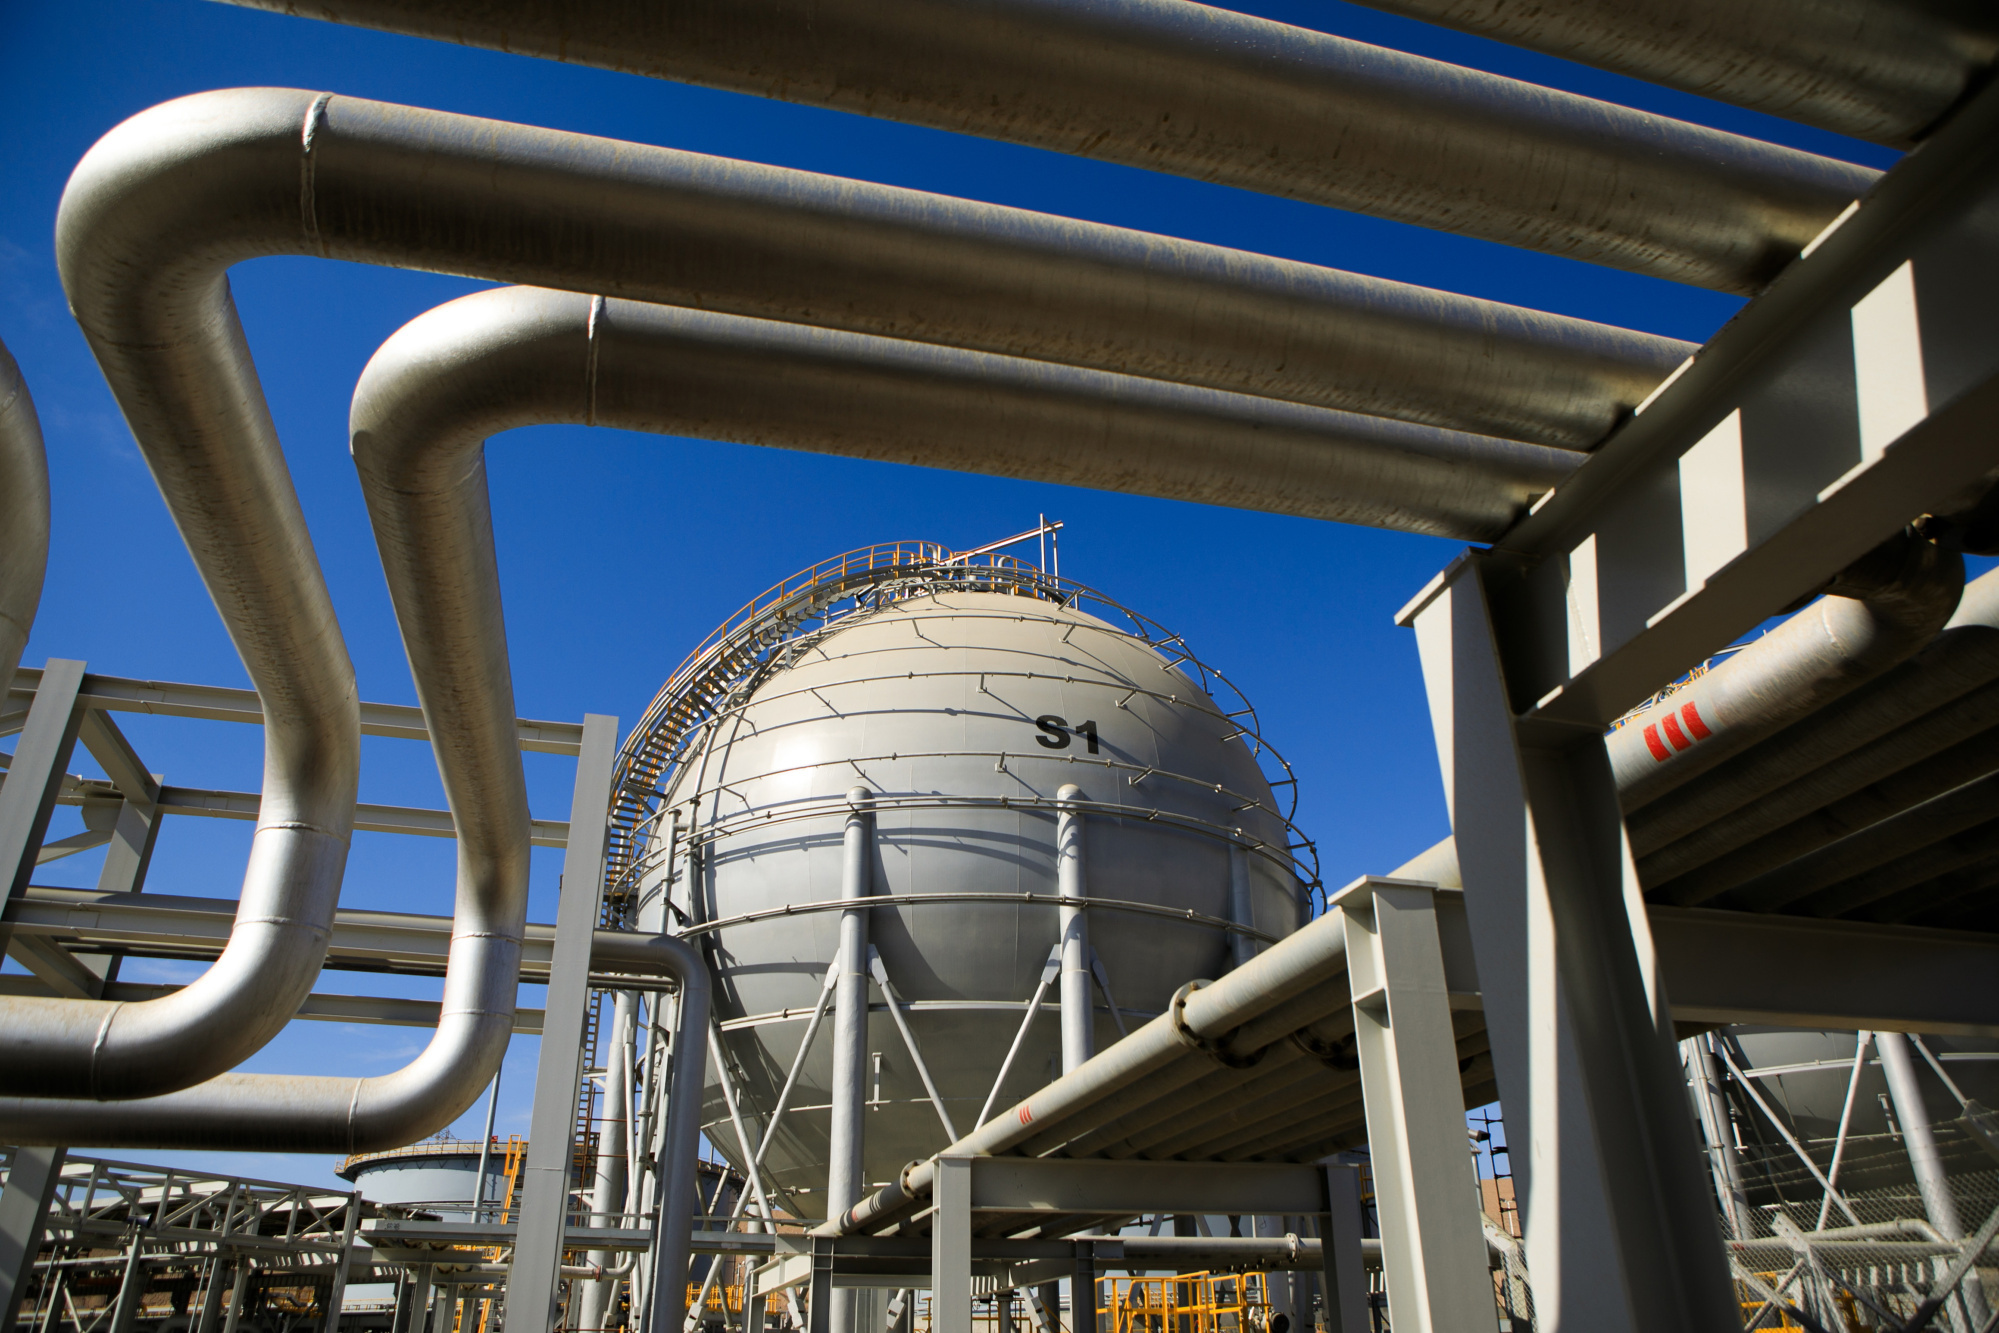 Storage sphere tanks for liquefied natural gas (LNG) sit near transfer pipes at Aqaba port, operated by Aqaba Development Corp., in Aqaba, Jordan, on Wednesday, April 11, 2018. Both the LNG and the liquefied petroleum gas (LPG) terminals were developed to secure the supply of gas resources after the disruption in Egyptian natural gas imports in 2010. Photographer: Annie Sakkab/Bloomberg